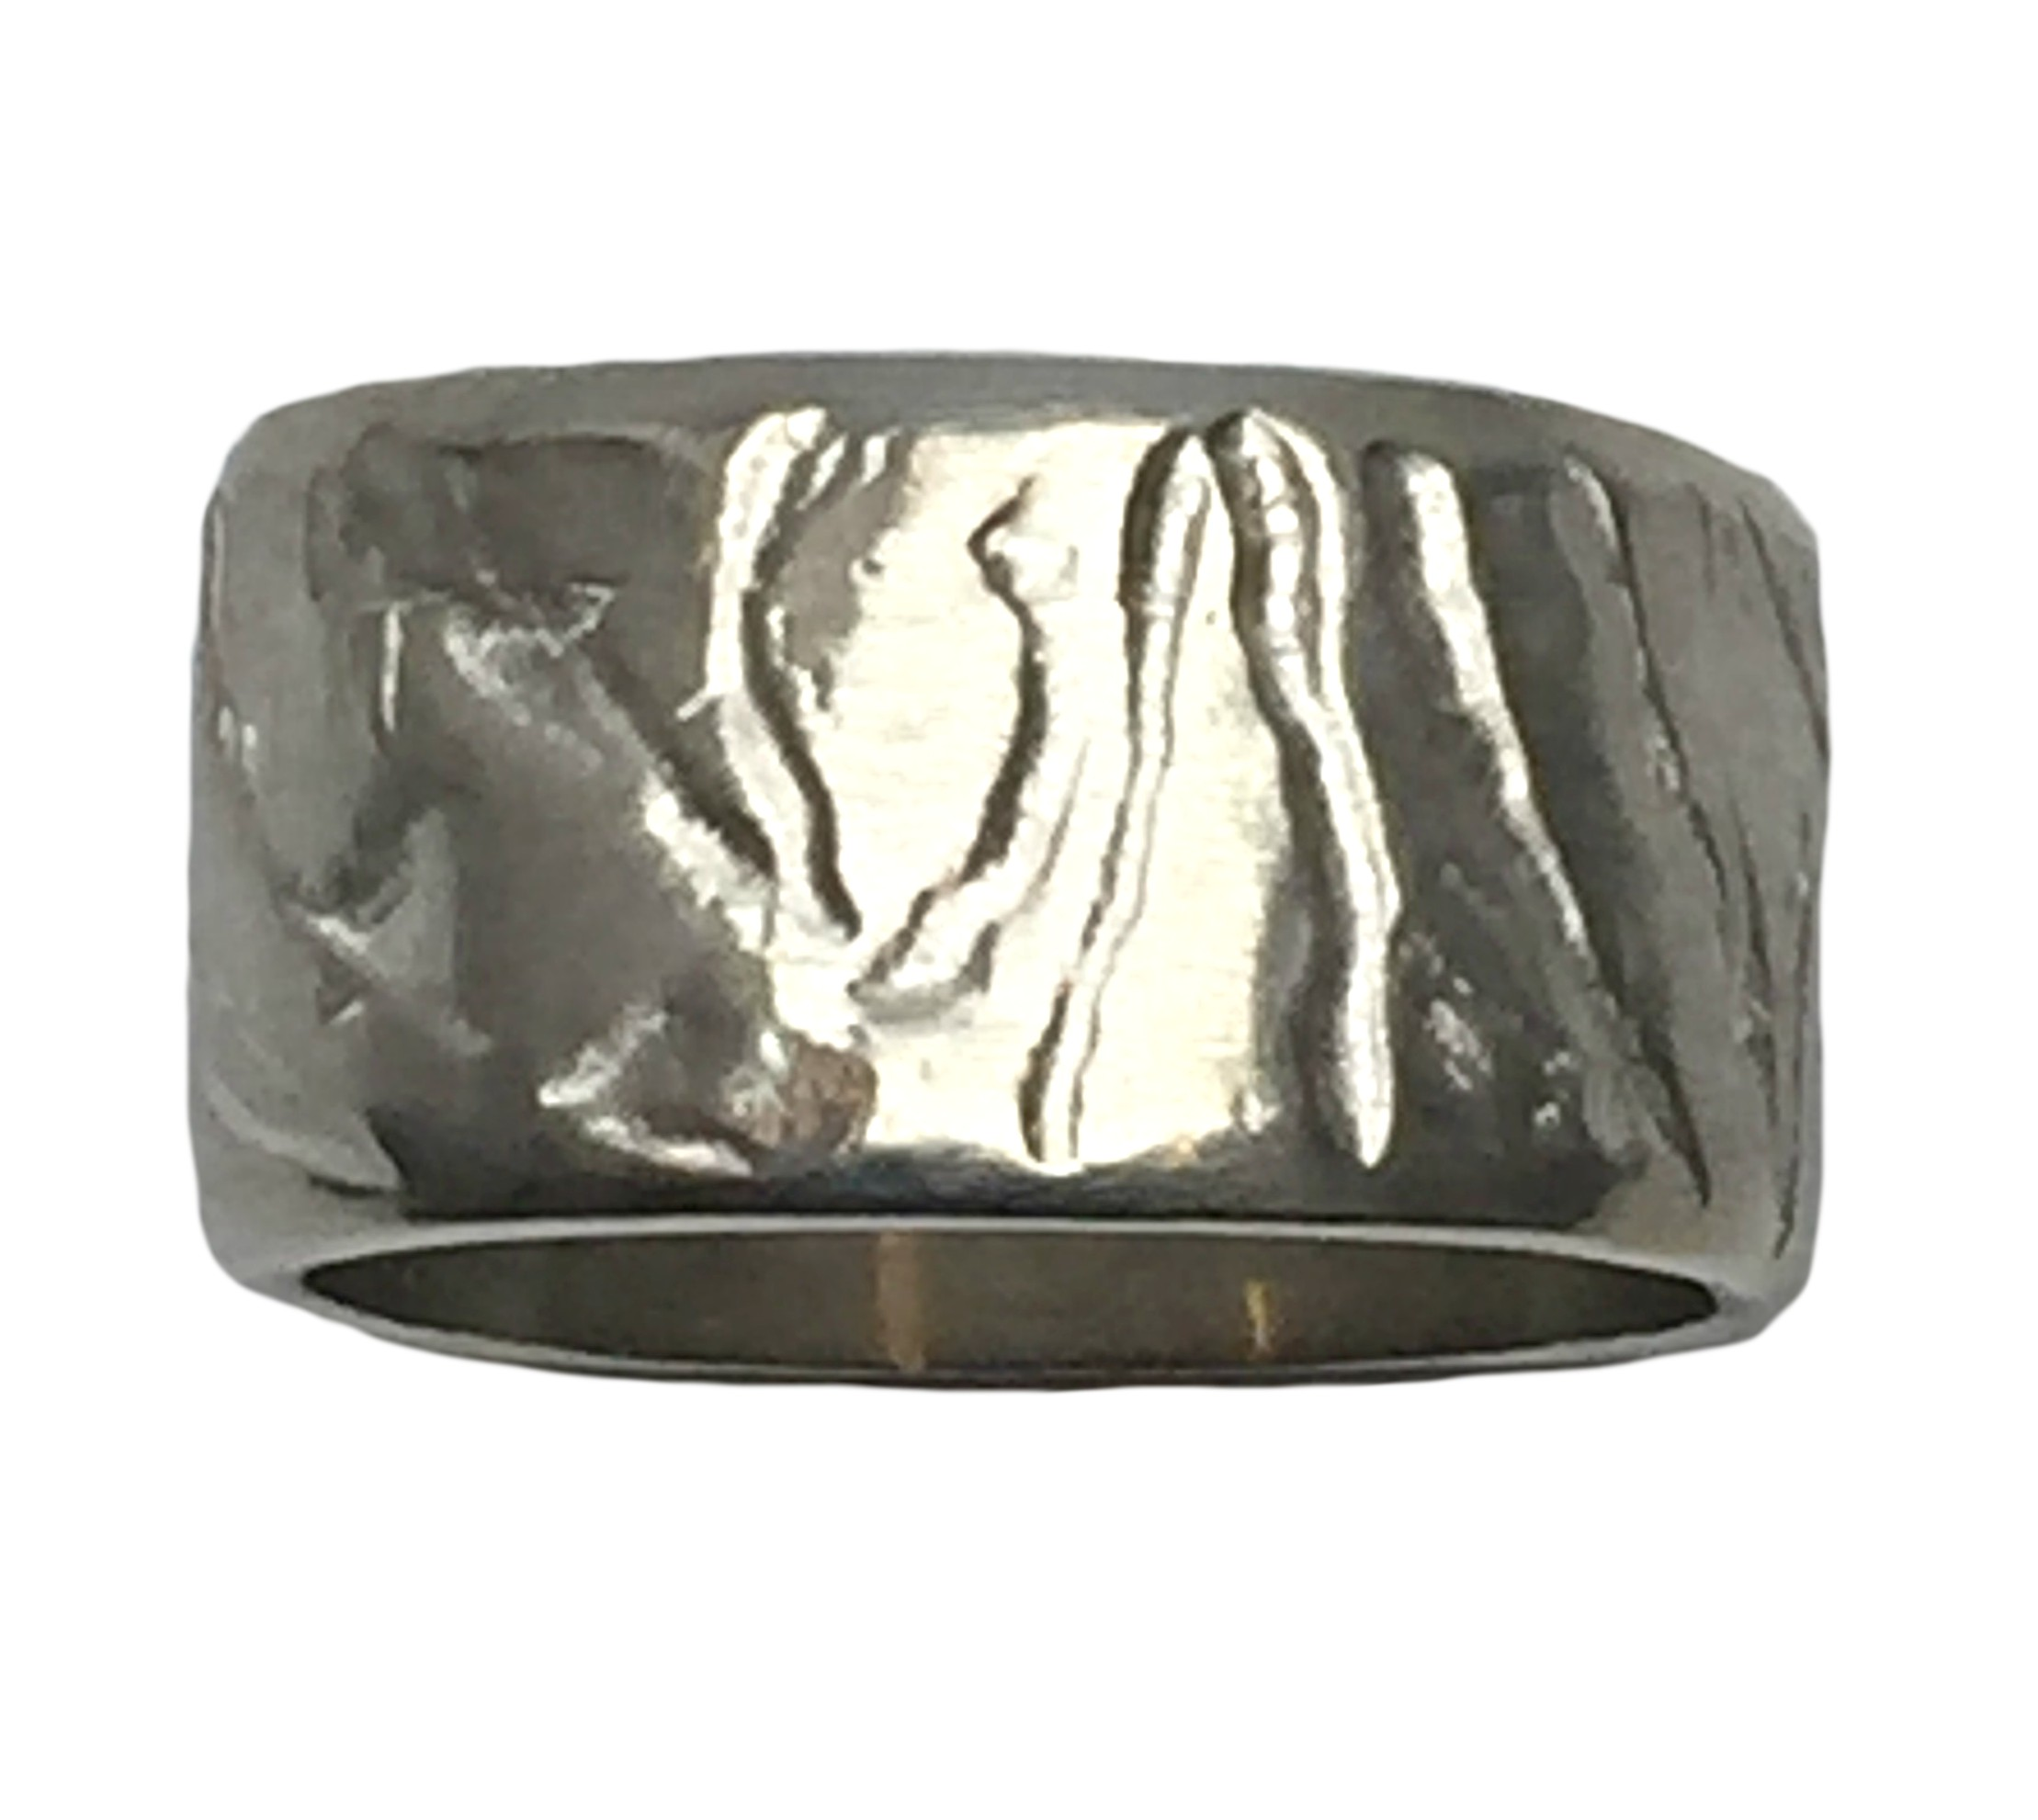 Sterling Silver Ring by Karyn Chopik | Effusion Art Gallery + Cast Glass Studio, Invermere BC